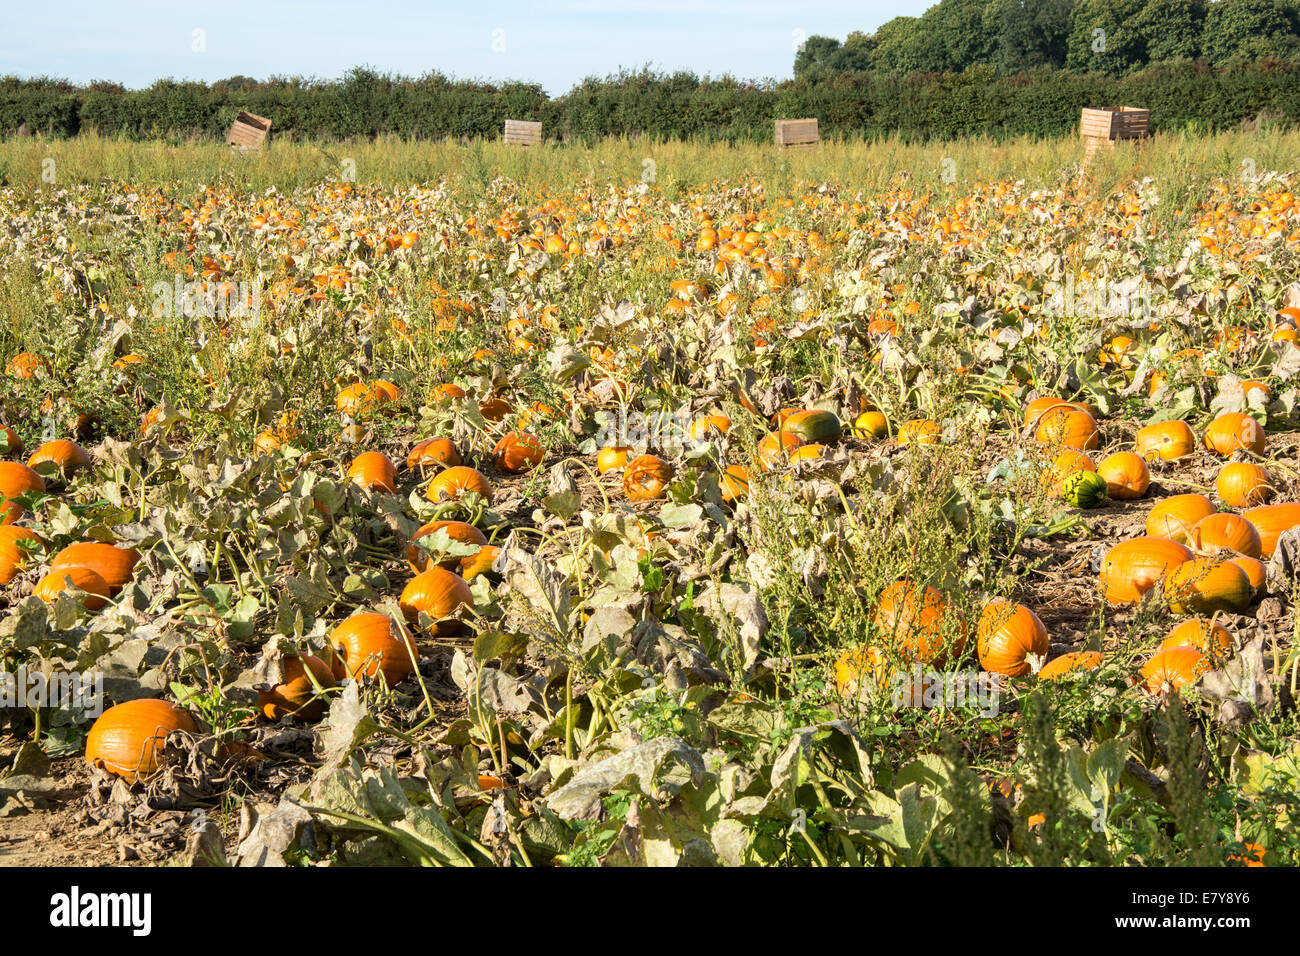 Field of growing pumpkins - Stock Image